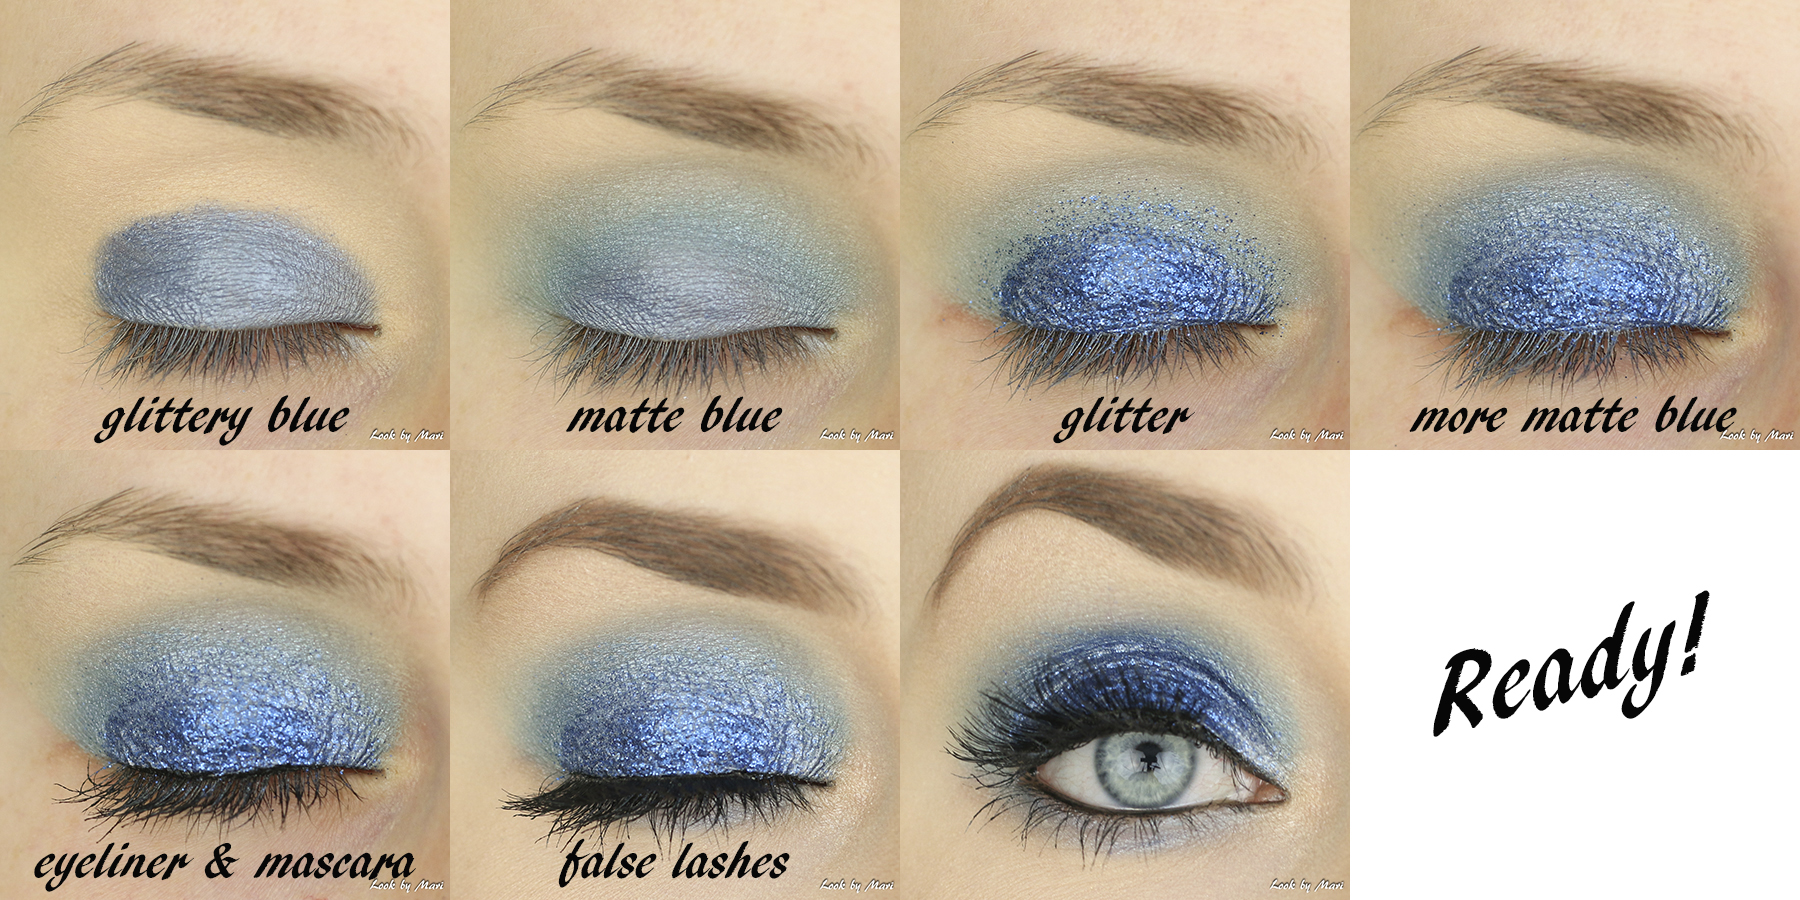 5 blue eye makeup glittery for beginners easy quick glam party eye makeup tutorial inspo